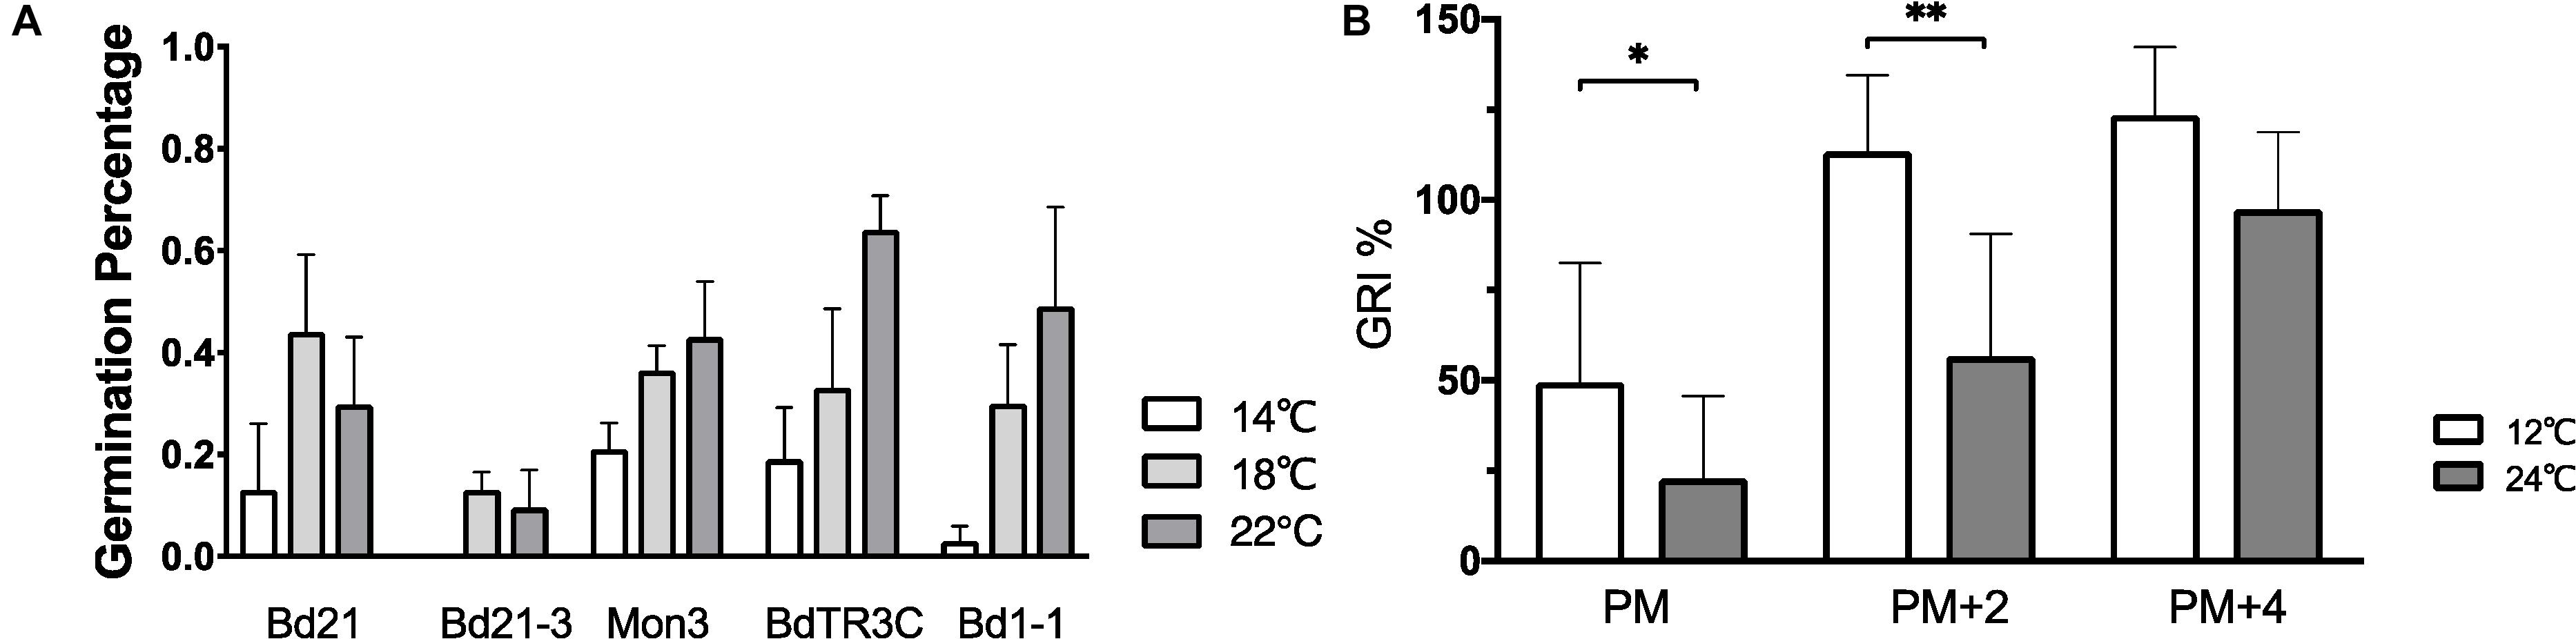 Frontiers The Effect Of Ambient Temperature On Brachypodium Distachyon Development Plant Science